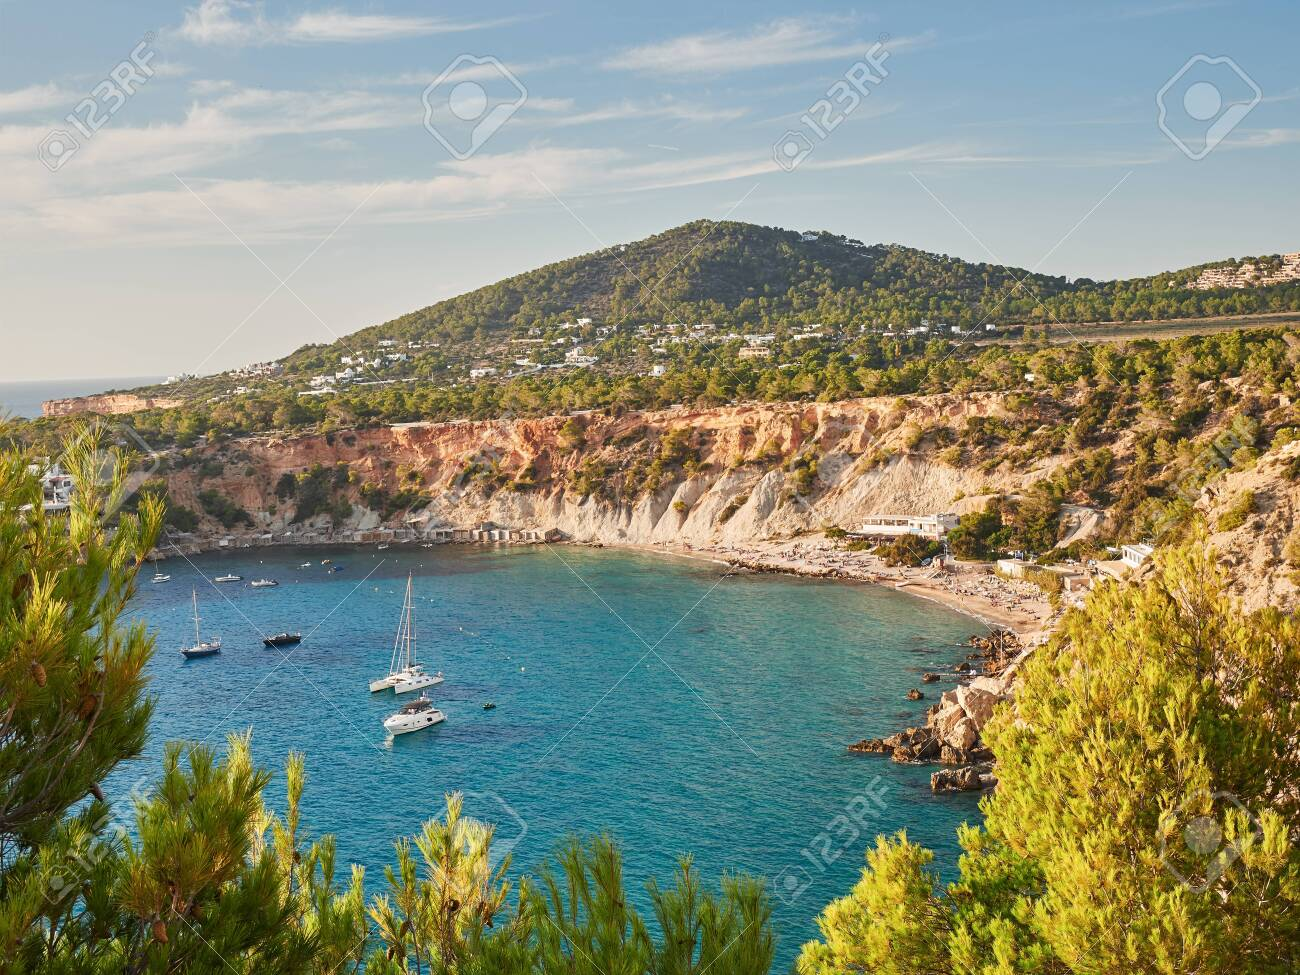 aerial view of natural park and beach of cala D´hort in Ibiza, Balearics,Spain - 133106651